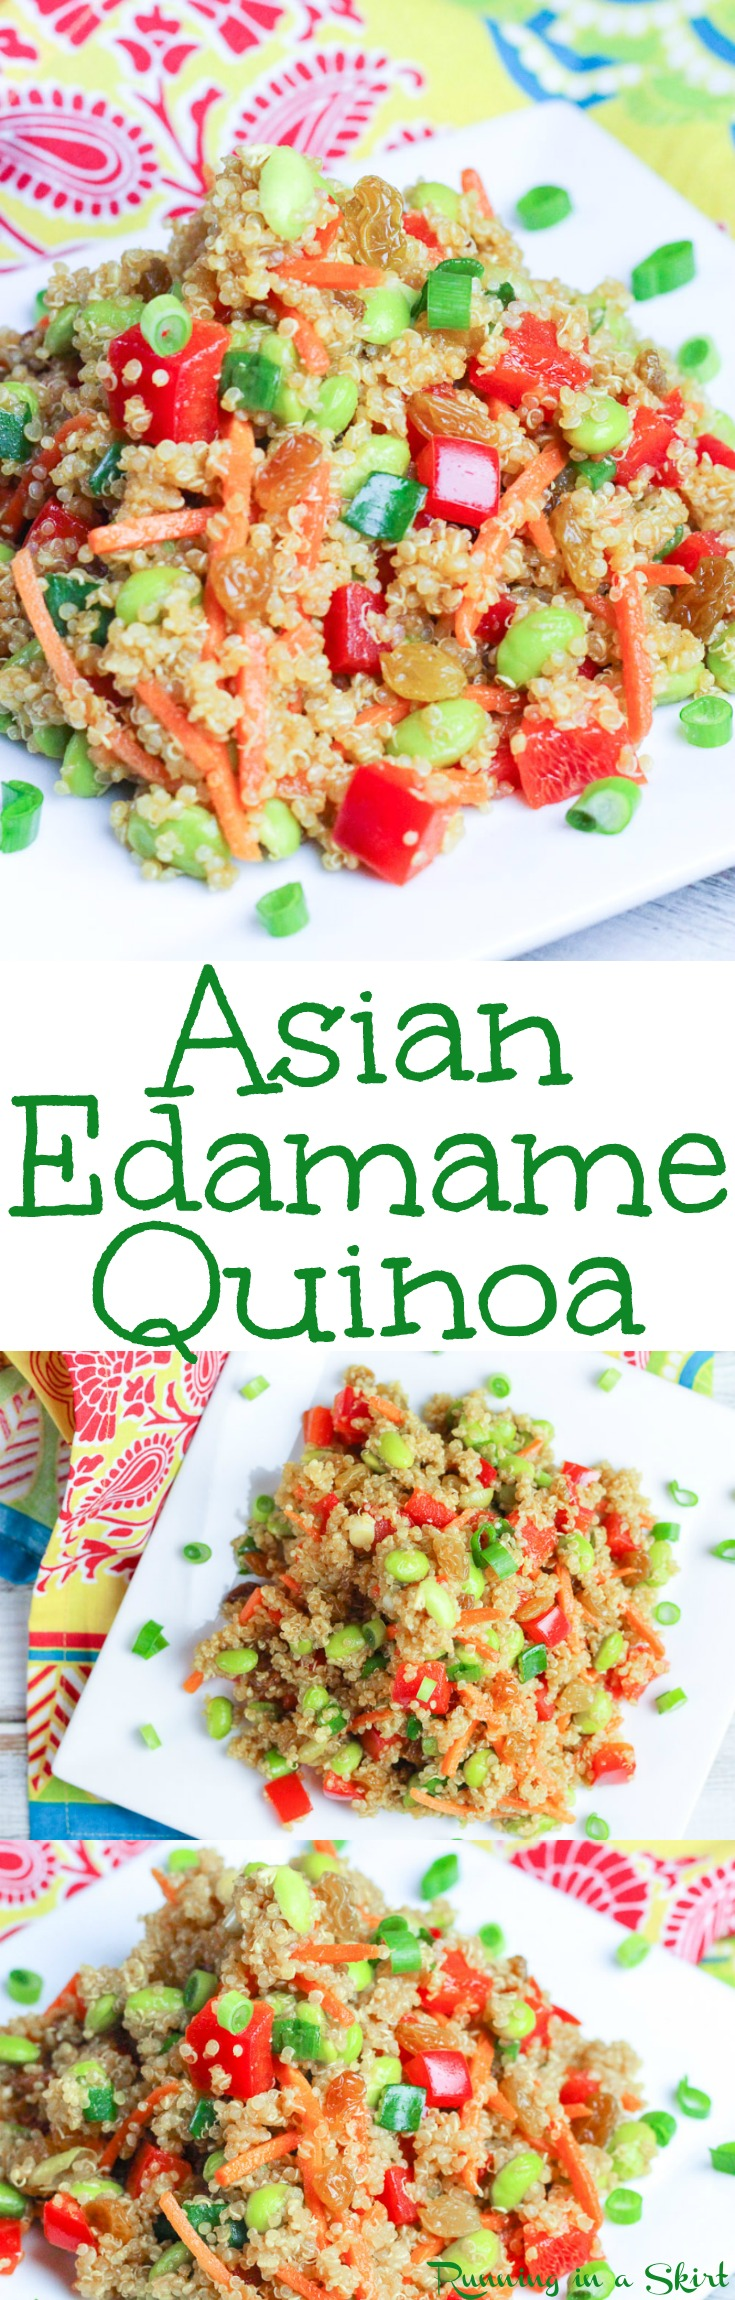 Healthy Asian Quinoa Salad recipe with Edamame - this high protein vegetarian and vegan dish is easy to make!  It uses sesame oil, soy sauce and honey for a clean eating dressing.  Packed with veggies making it the perfect food for dinners, lunches or appetizers. / Running in a Skirt